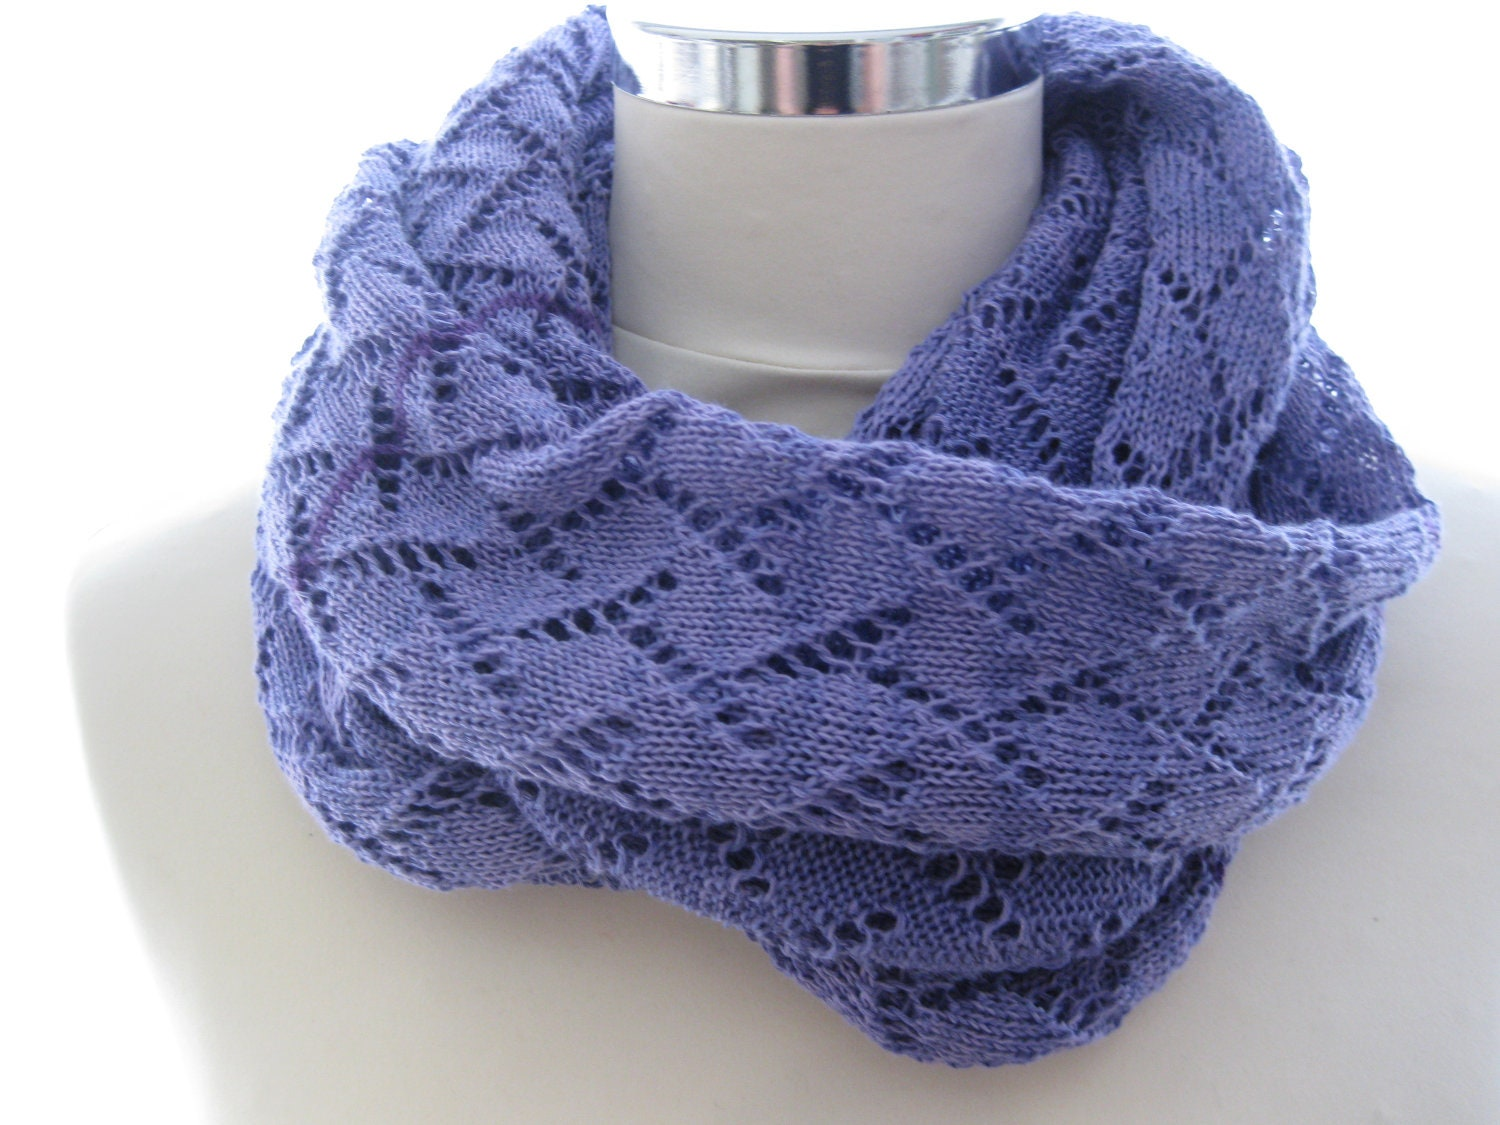 Knitting Pattern Lace Infinity Scarf : Items similar to Infinity scarf machine knitted in lace ...